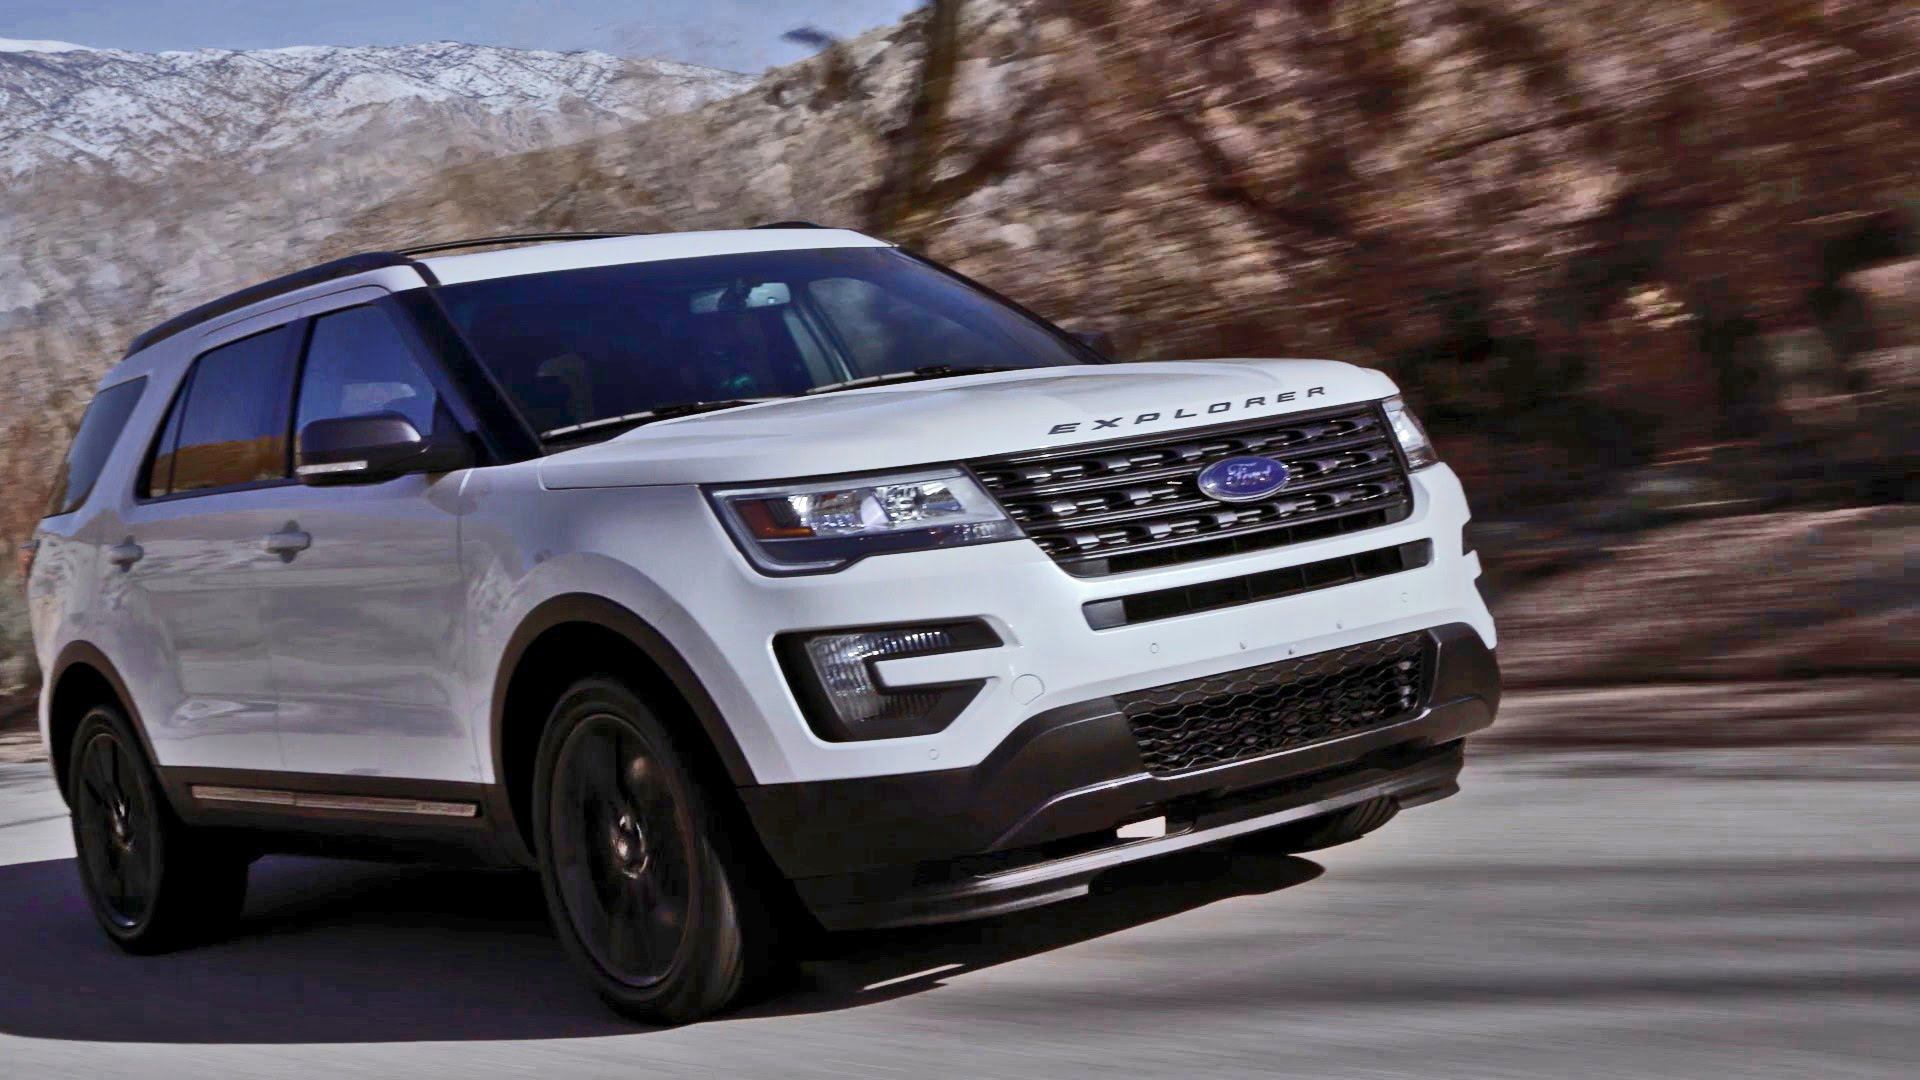 White 2017 Ford Explorer speeding down the road.